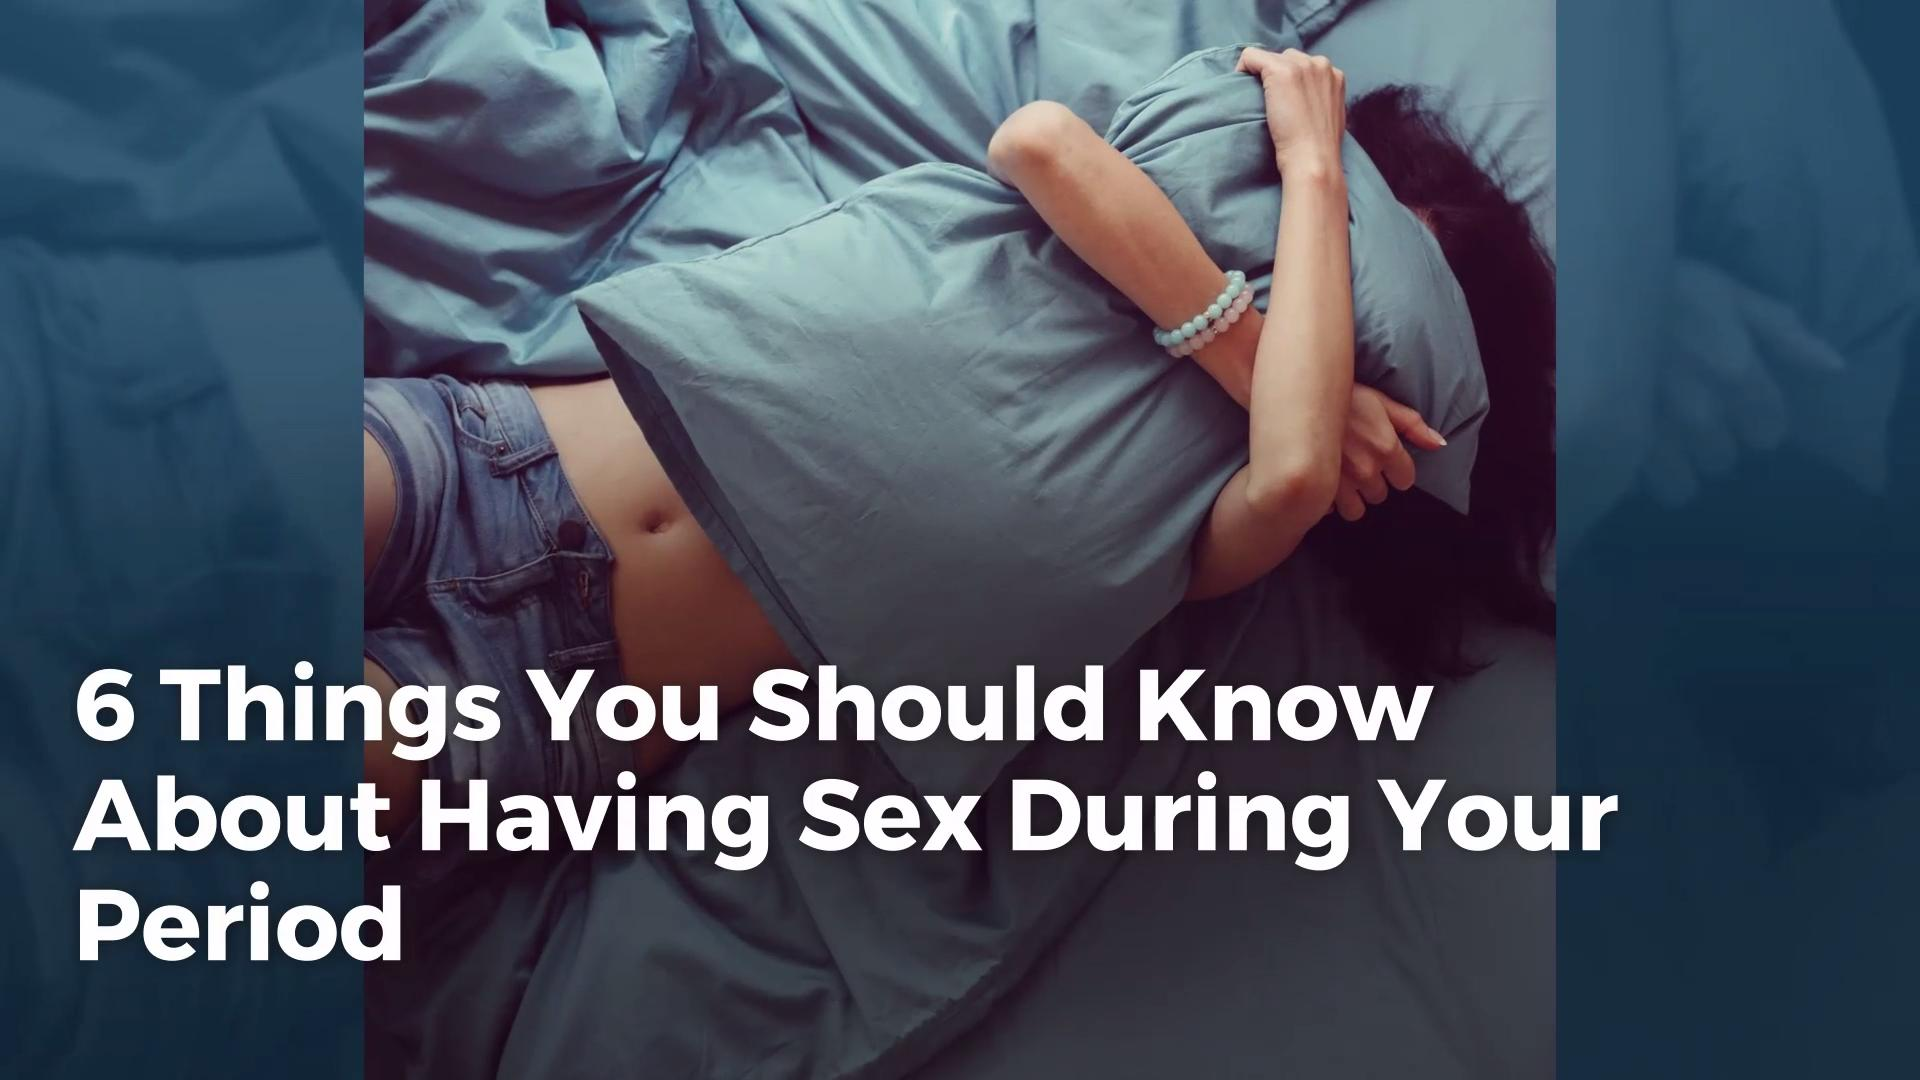 Can having sex during menstruation cause problems